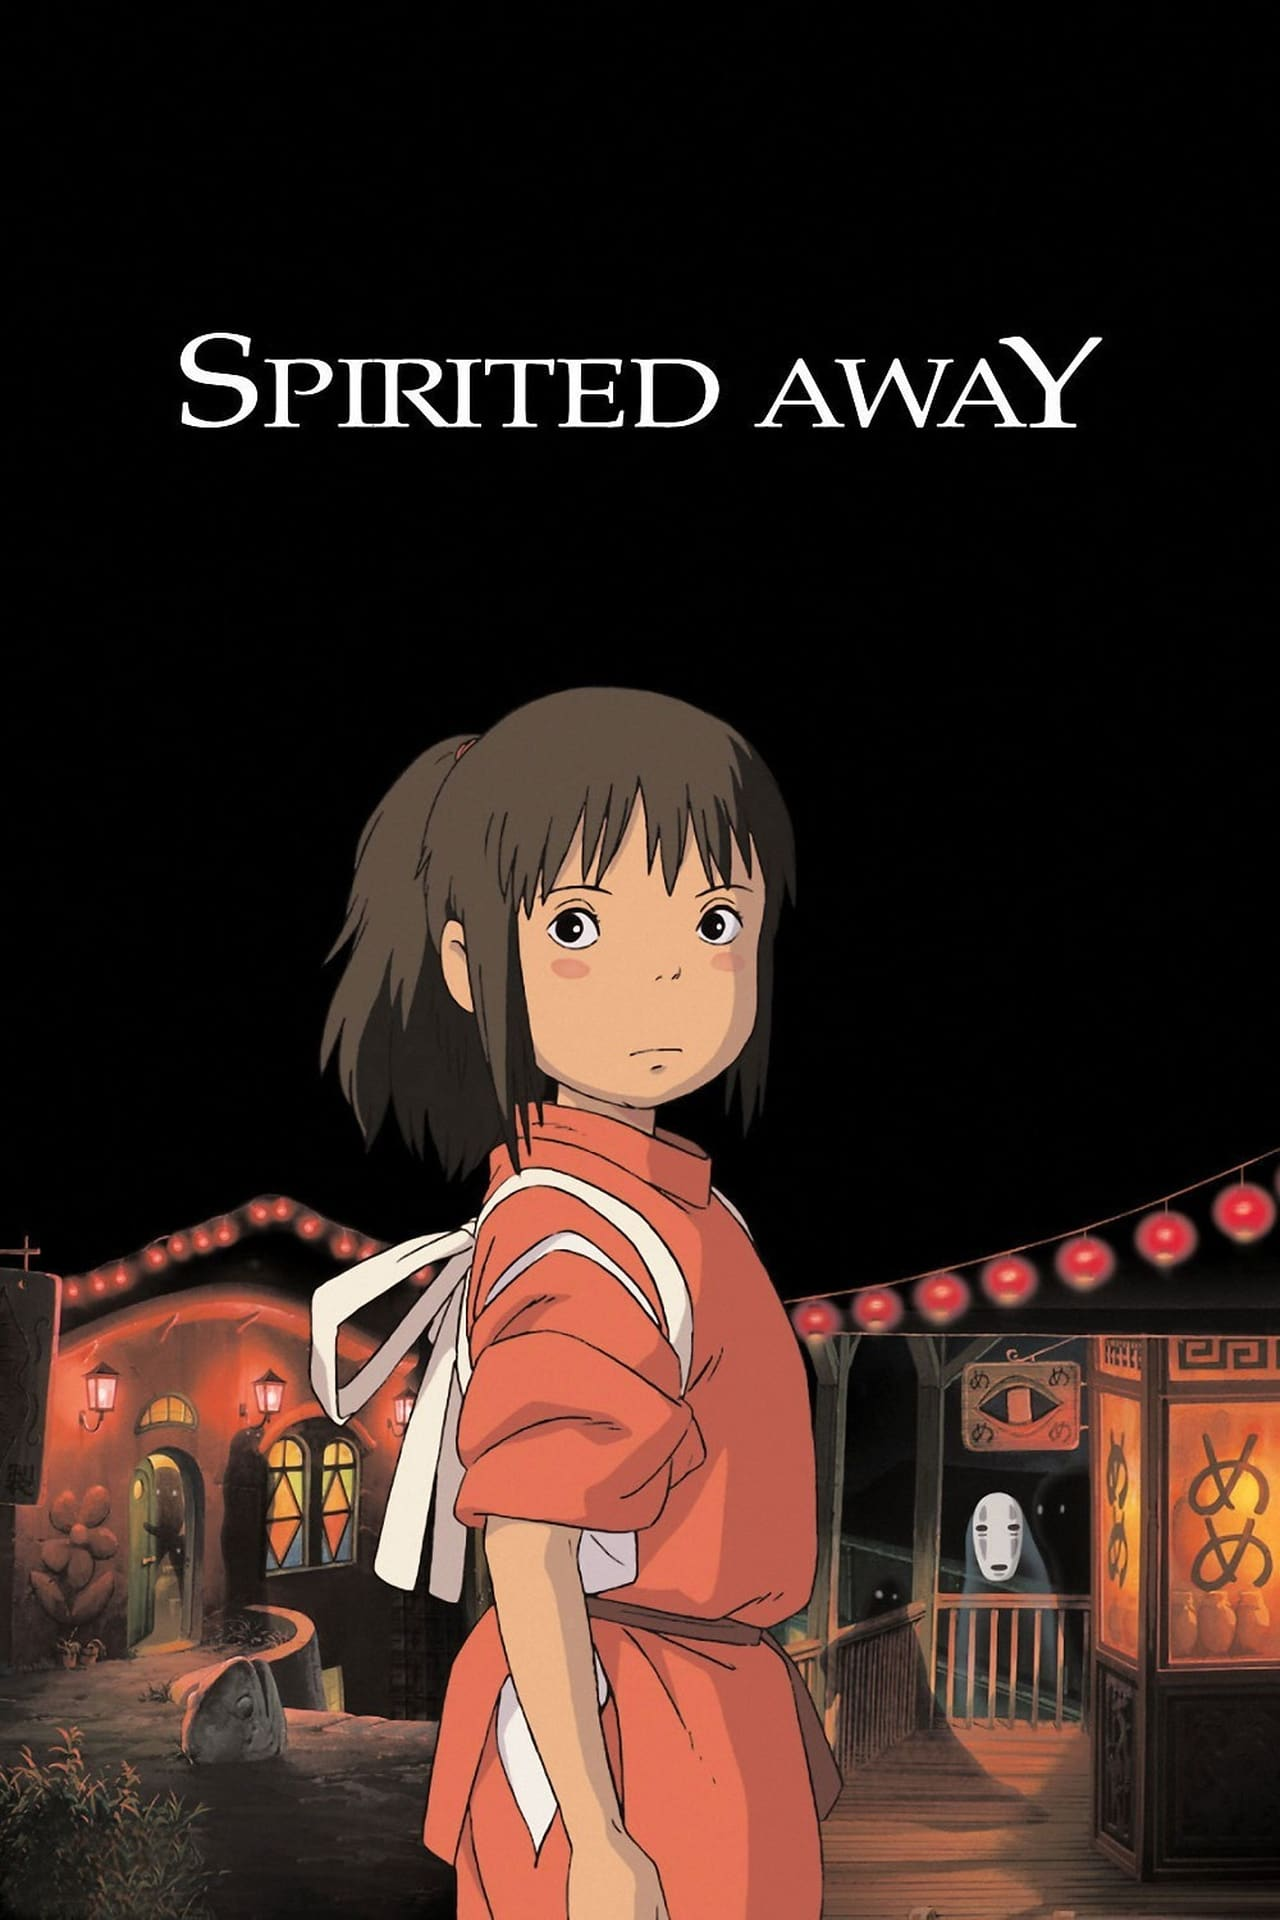 Putlocker Spirited Away (2002)